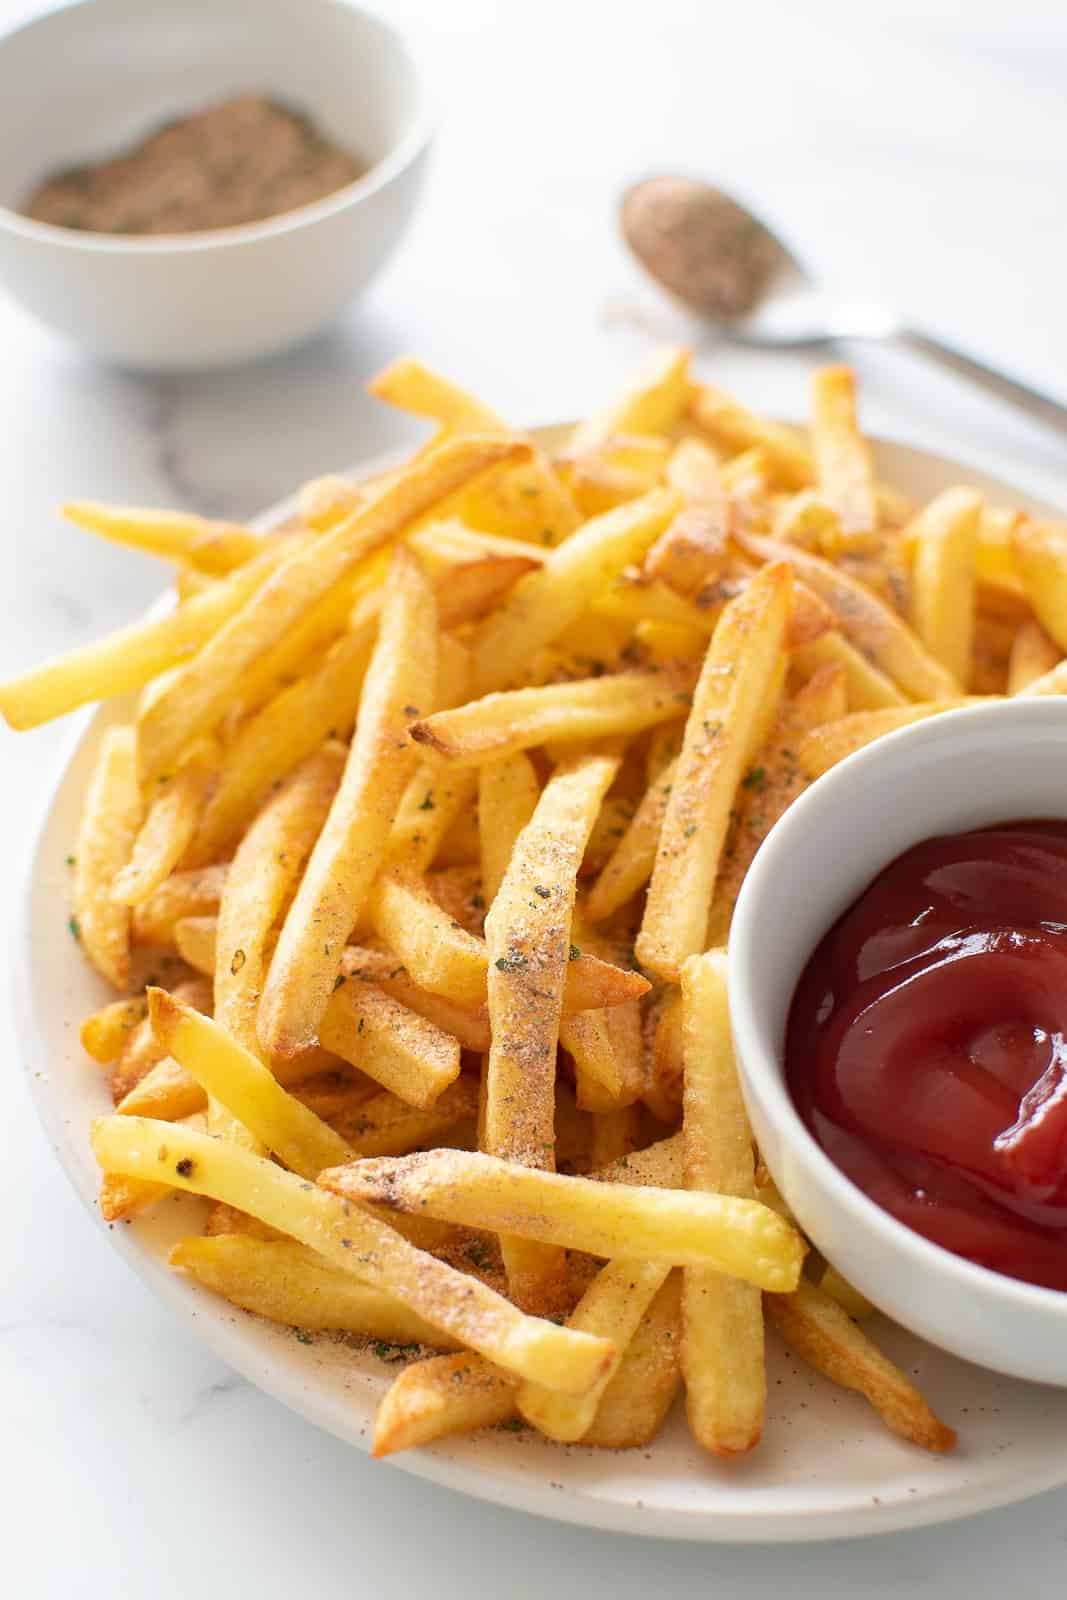 French fries with seasoning.